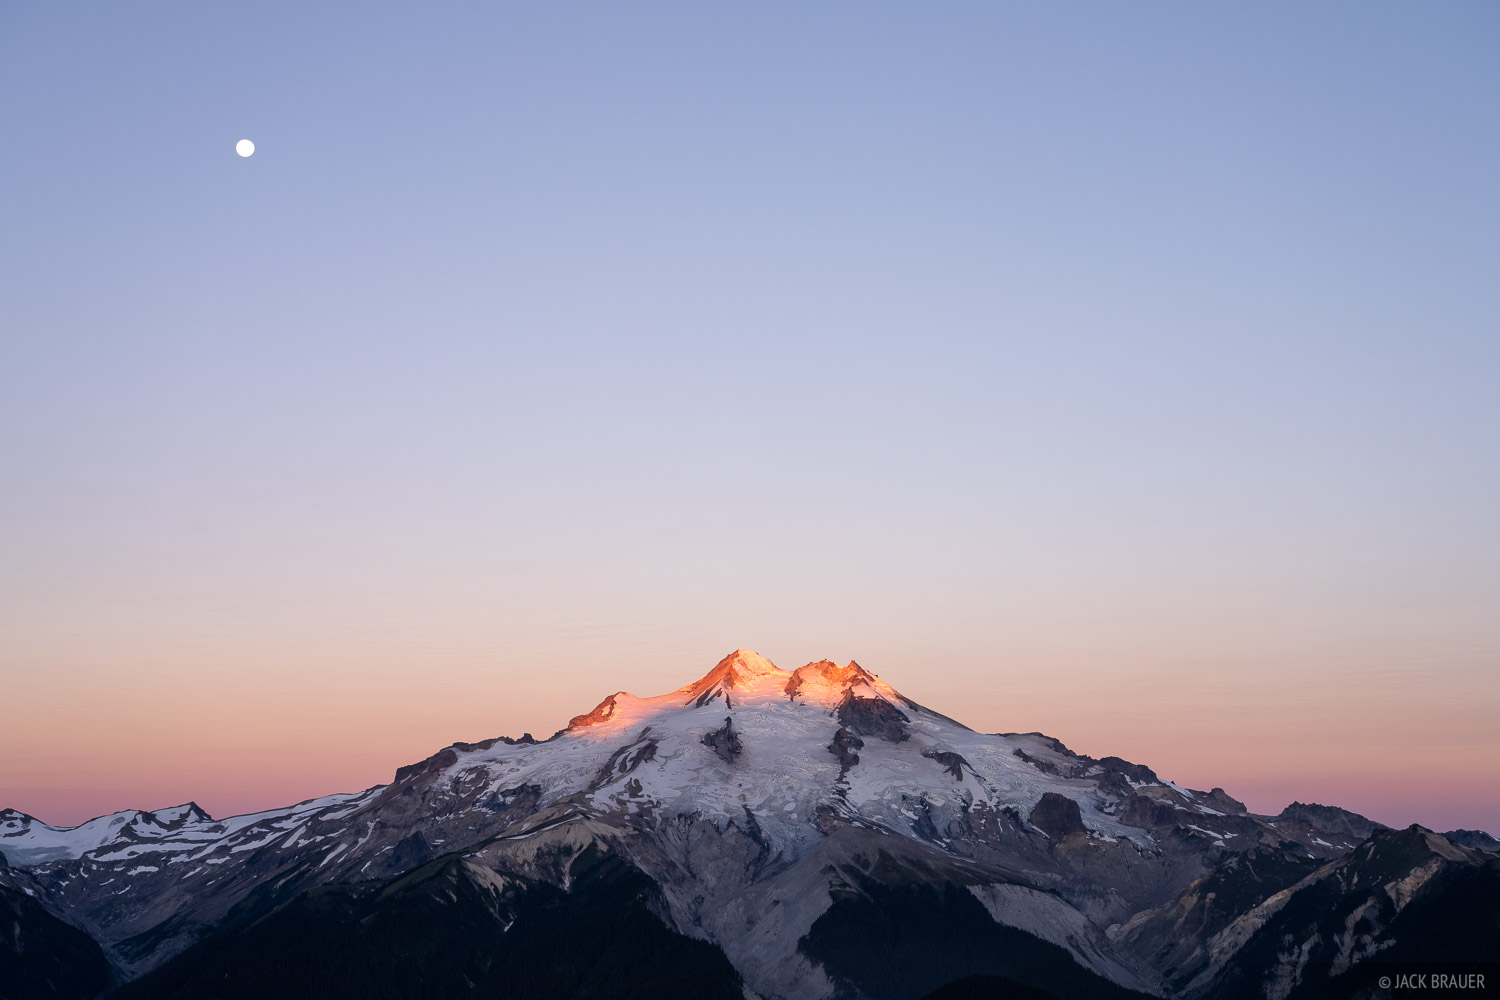 Glacier Peak, Glacier Peak Wilderness, Washington, moon, Cascades, photo